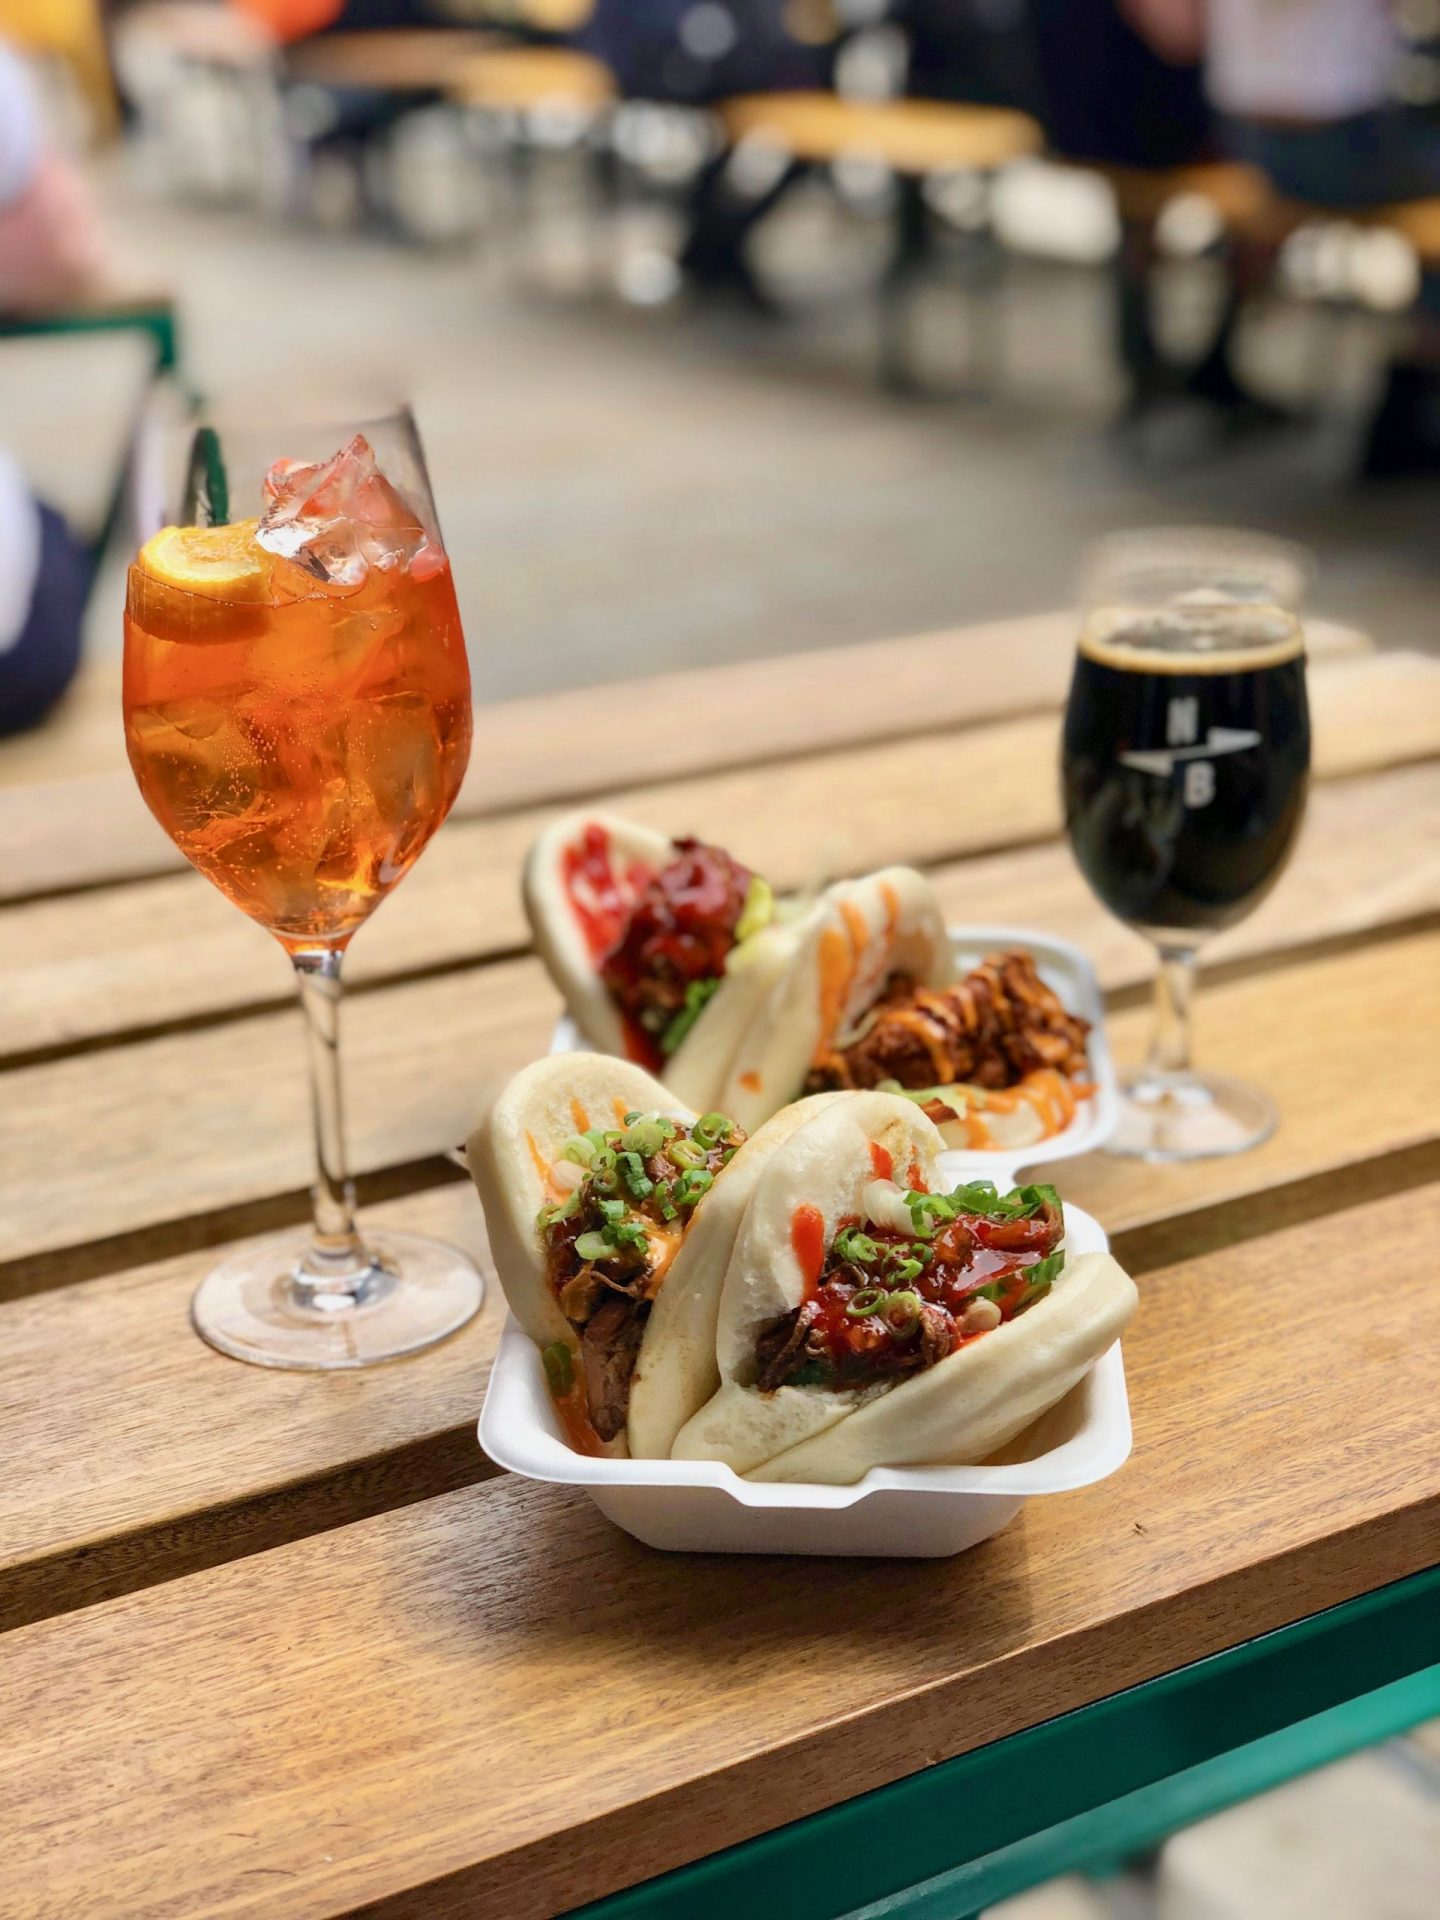 Beer and Bao buns from Little Bao Boy in Leeds, featuring two pair of bao buns, an aperol spritz and a dark beer